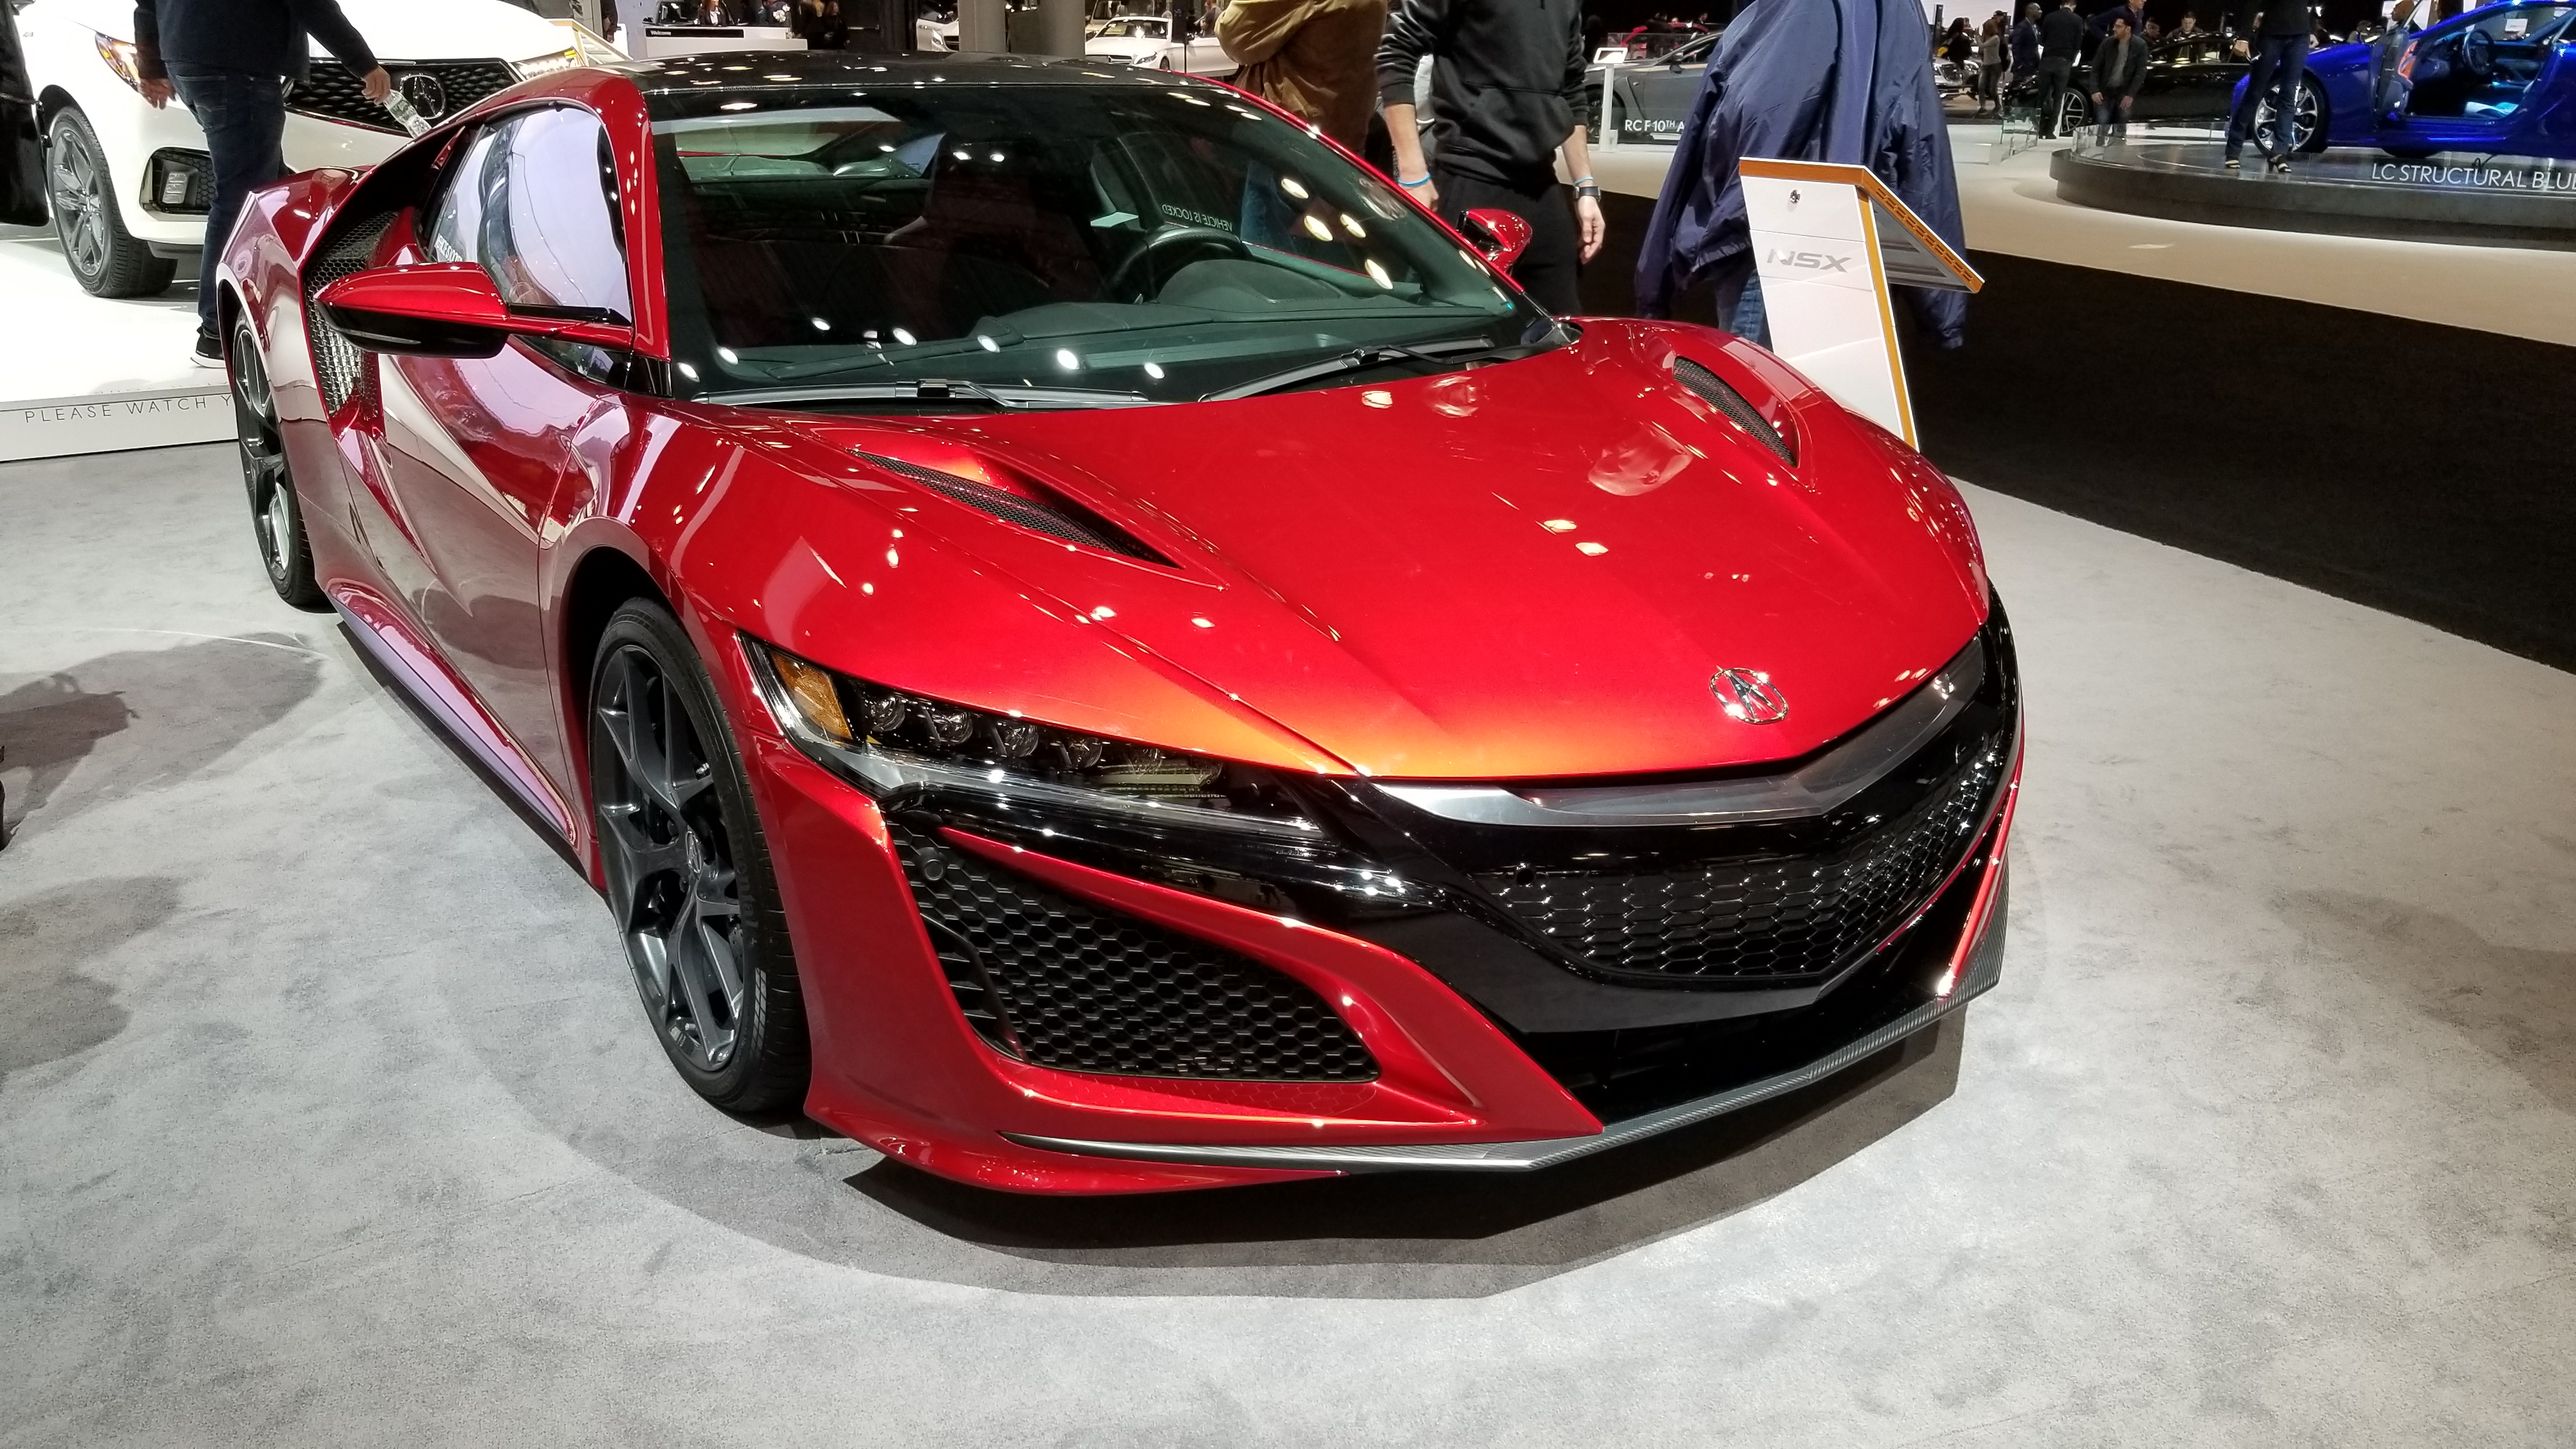 Acura NSX. One of the best cars I have ever driven